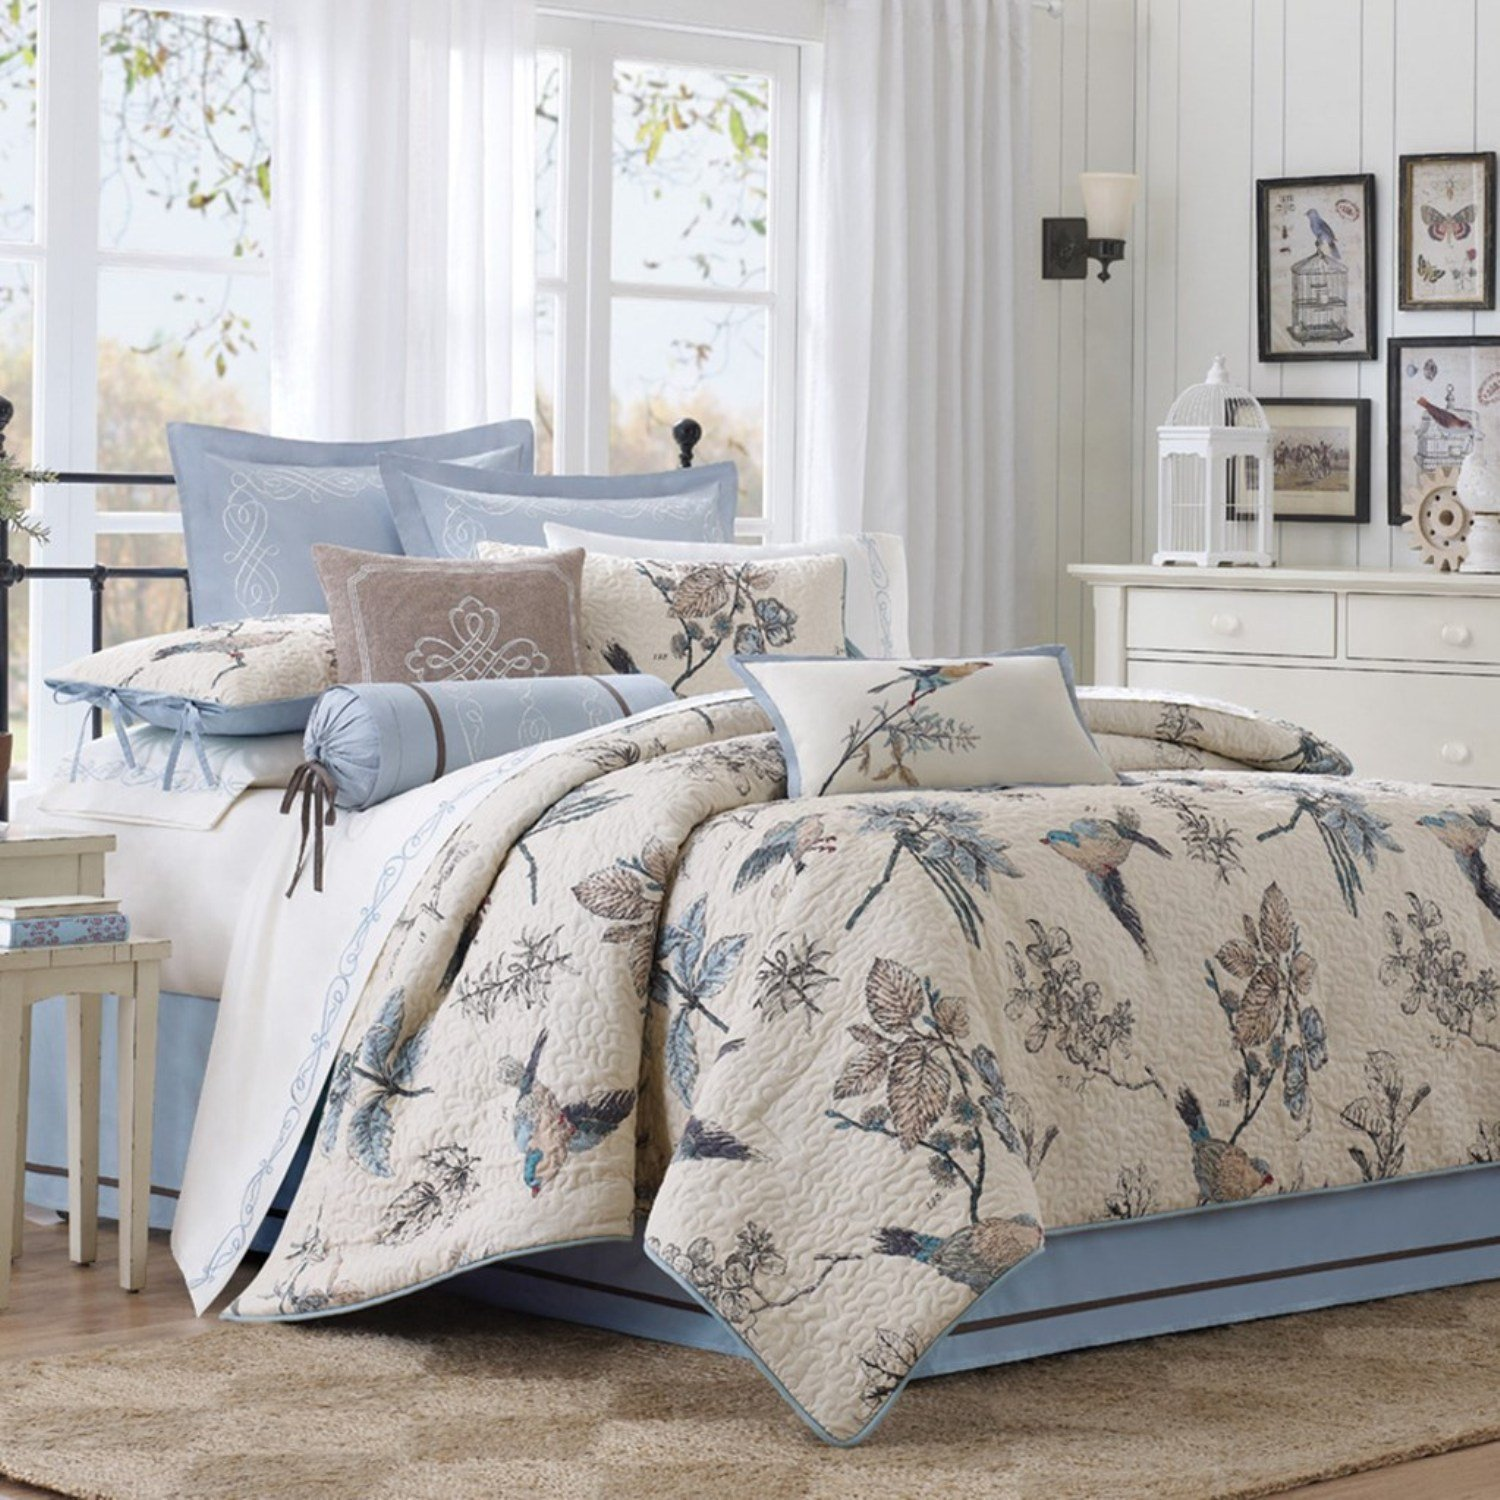 Harbor House Bedding Sets – Ease Bedding with Style